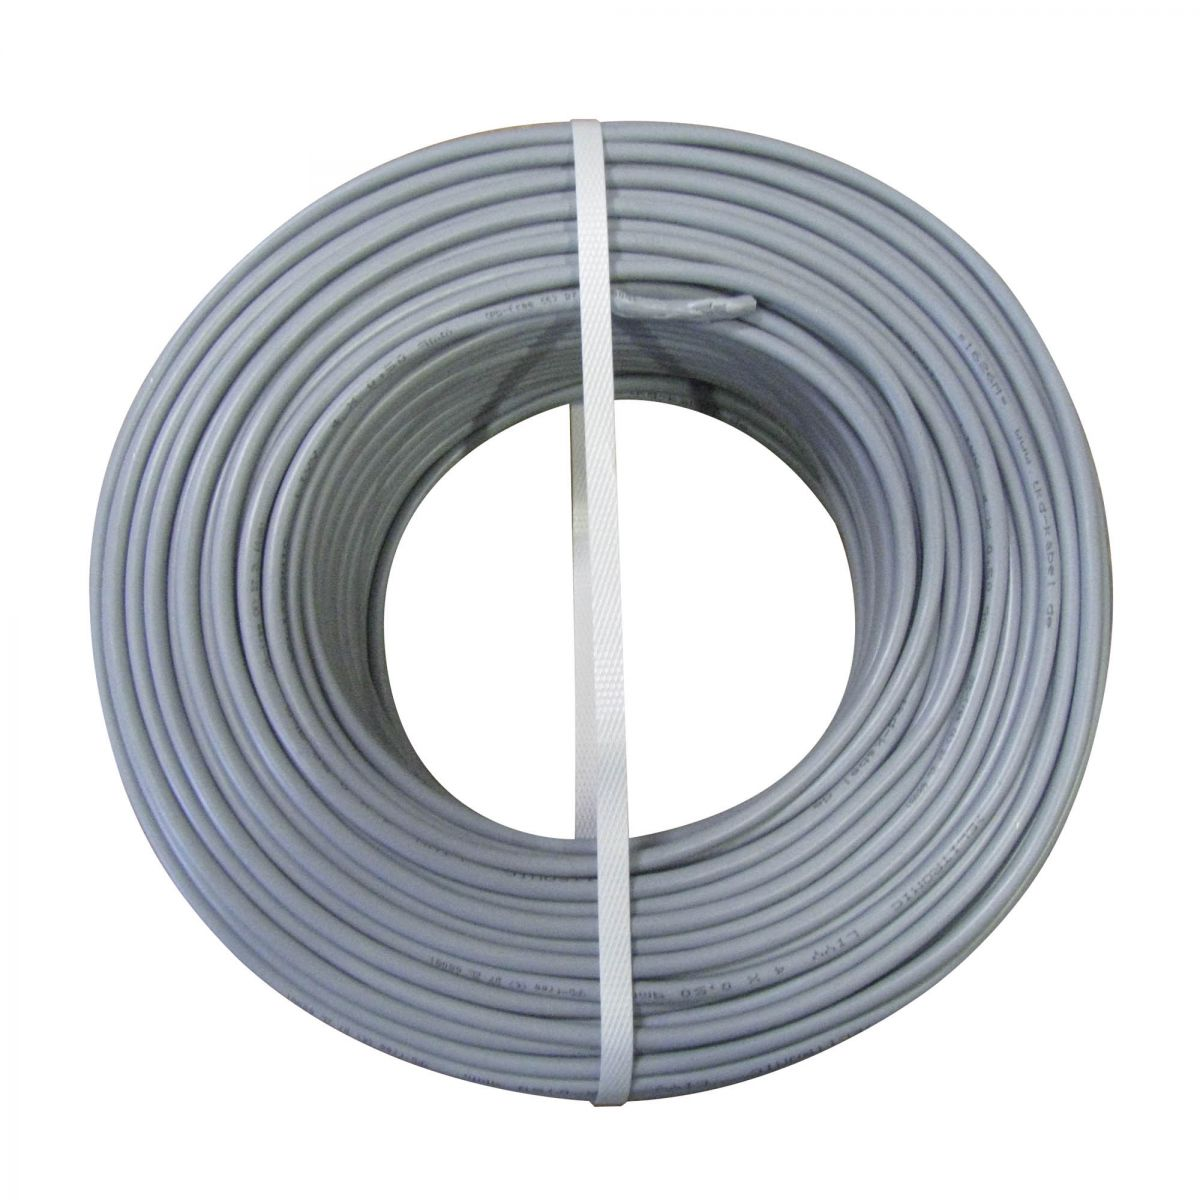 cable 4x05 mm liyy 100 m connection to intelligent motor